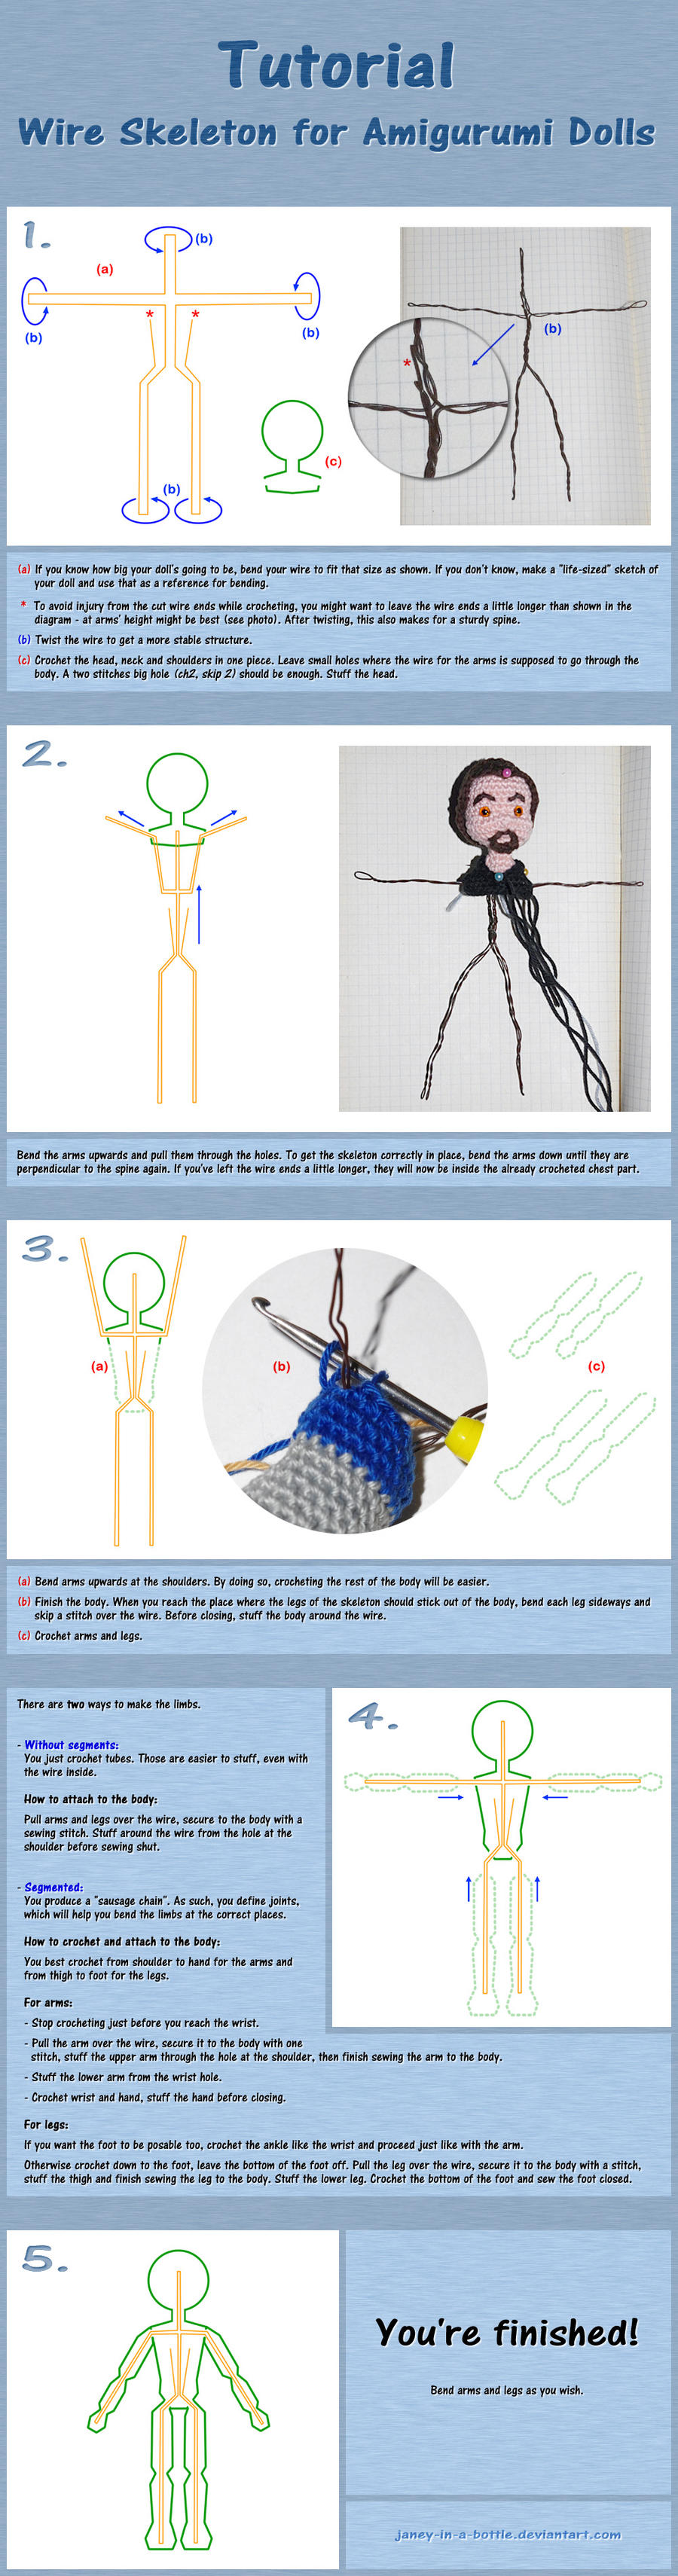 Tutorial: Wire Skeleton For Amigurumi Dolls by janey-in-a-bottle on ...